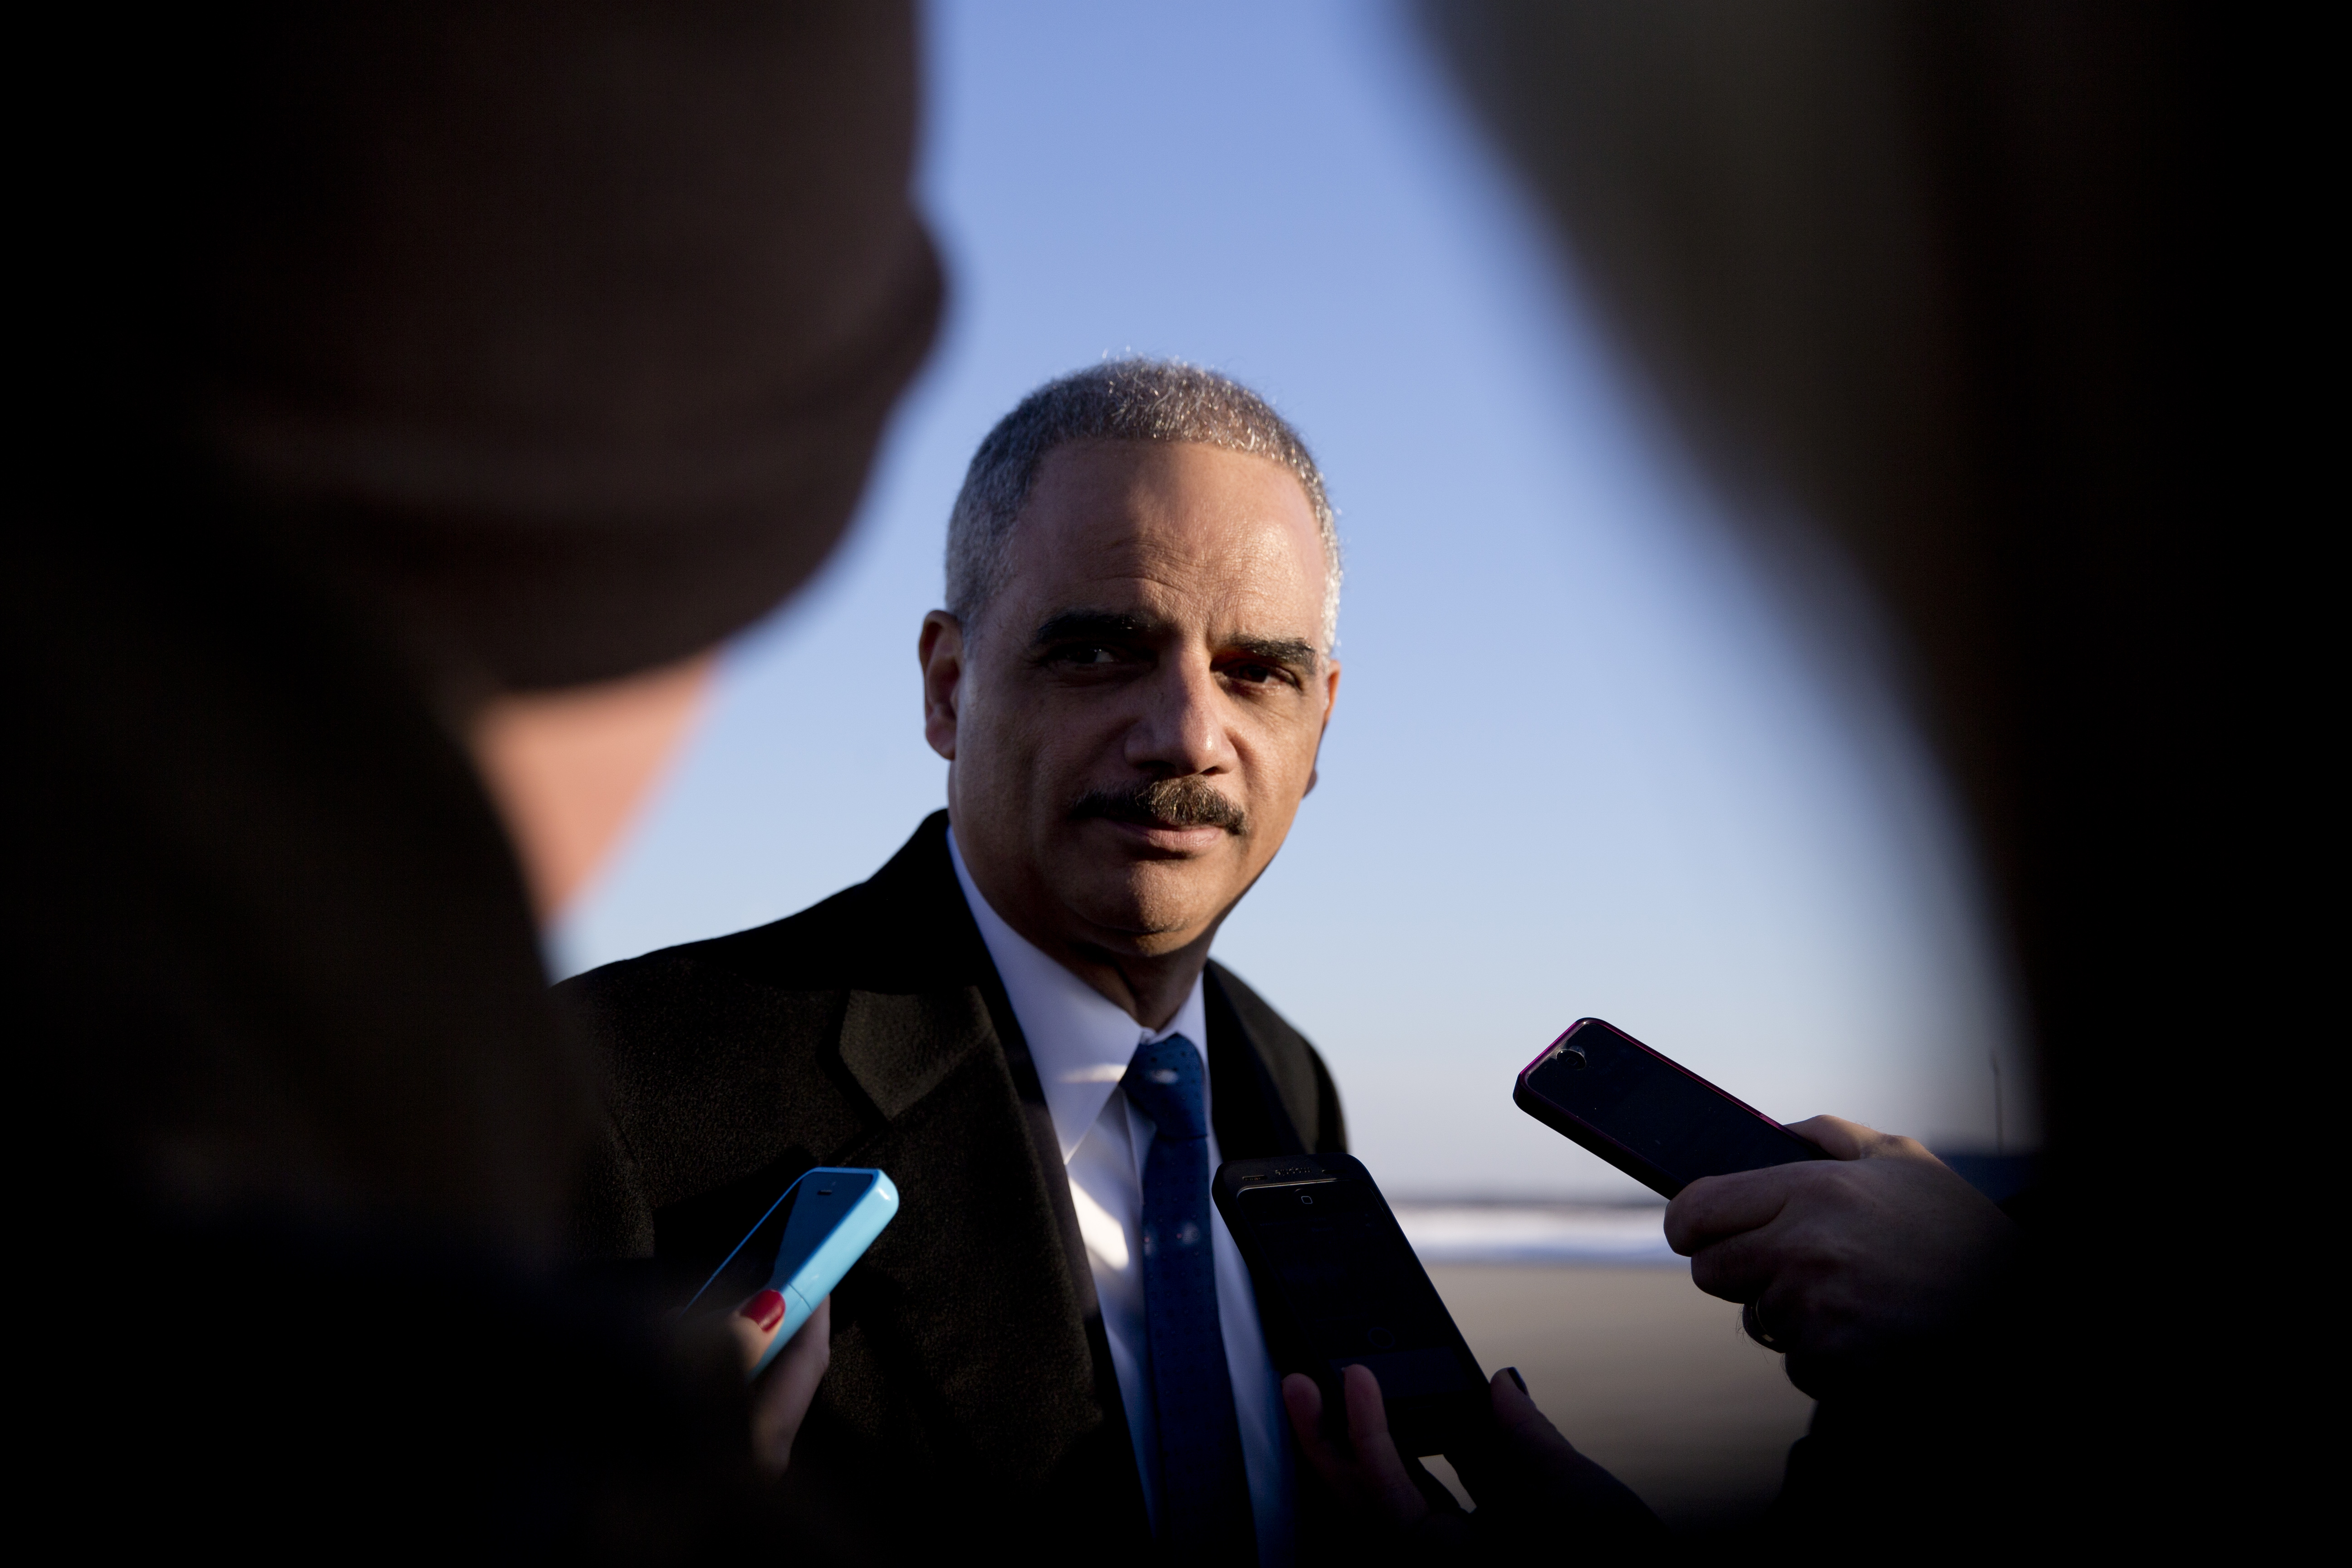 Attorney General Eric Holder talks with media as he arrives on Air Force One in Andrews Air Force Base, Md. on March 6, 2015, with President Barack Obama, from Columbia, S.C.